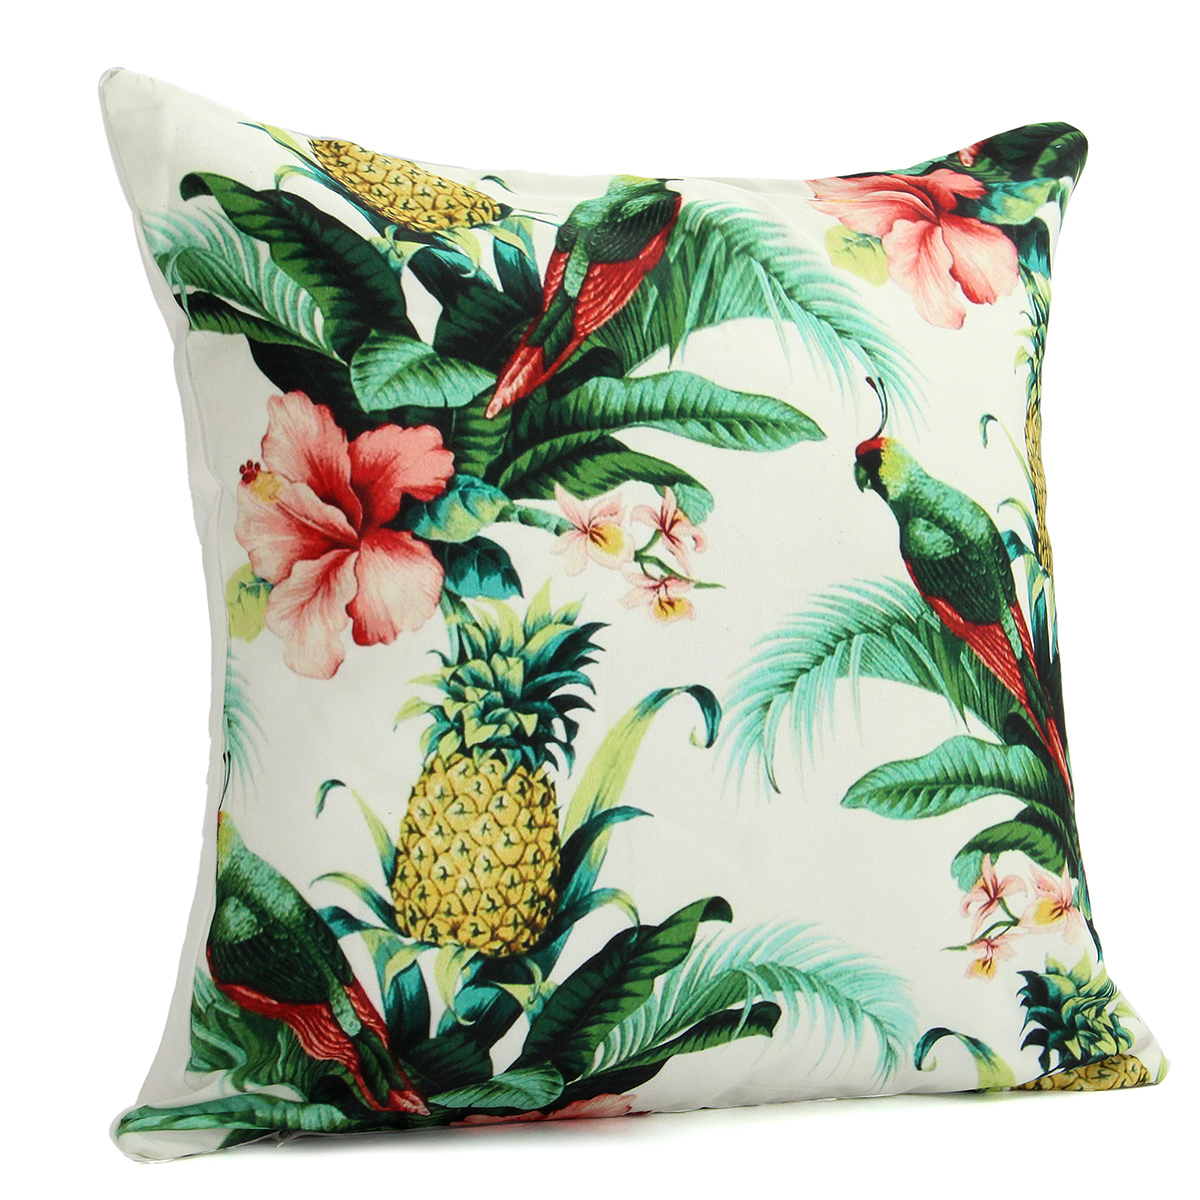 45x45cm Pineapple and Parrot Canvas Chair Cushion Cover Throw Pillow Case Home Sofa Decor Alex NLD